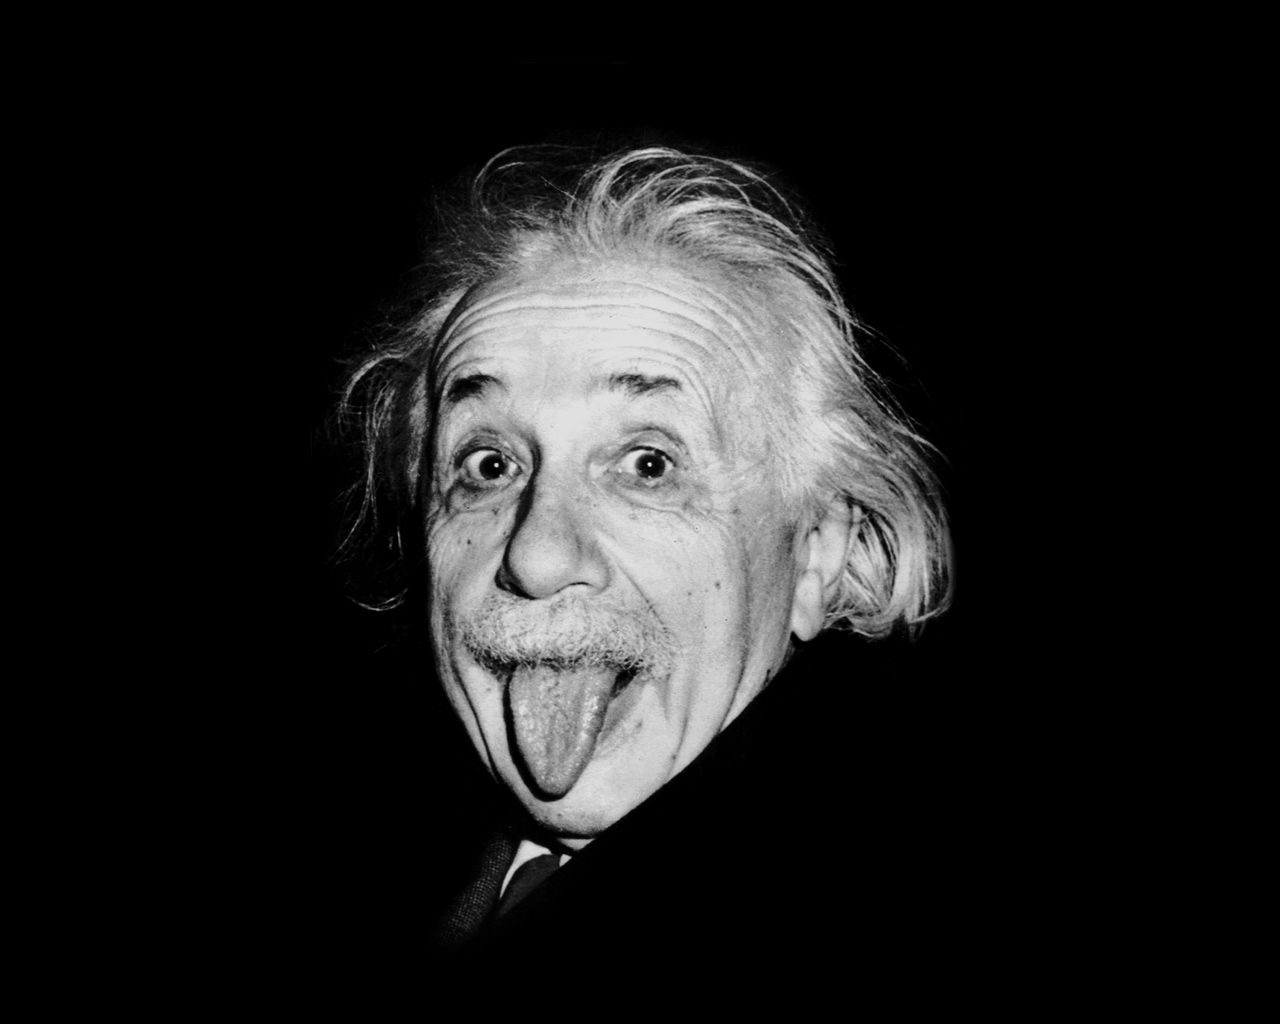 Einstein Is A Favorite Model For Depictions Of Mad Scientists And Absent Minded Professors His